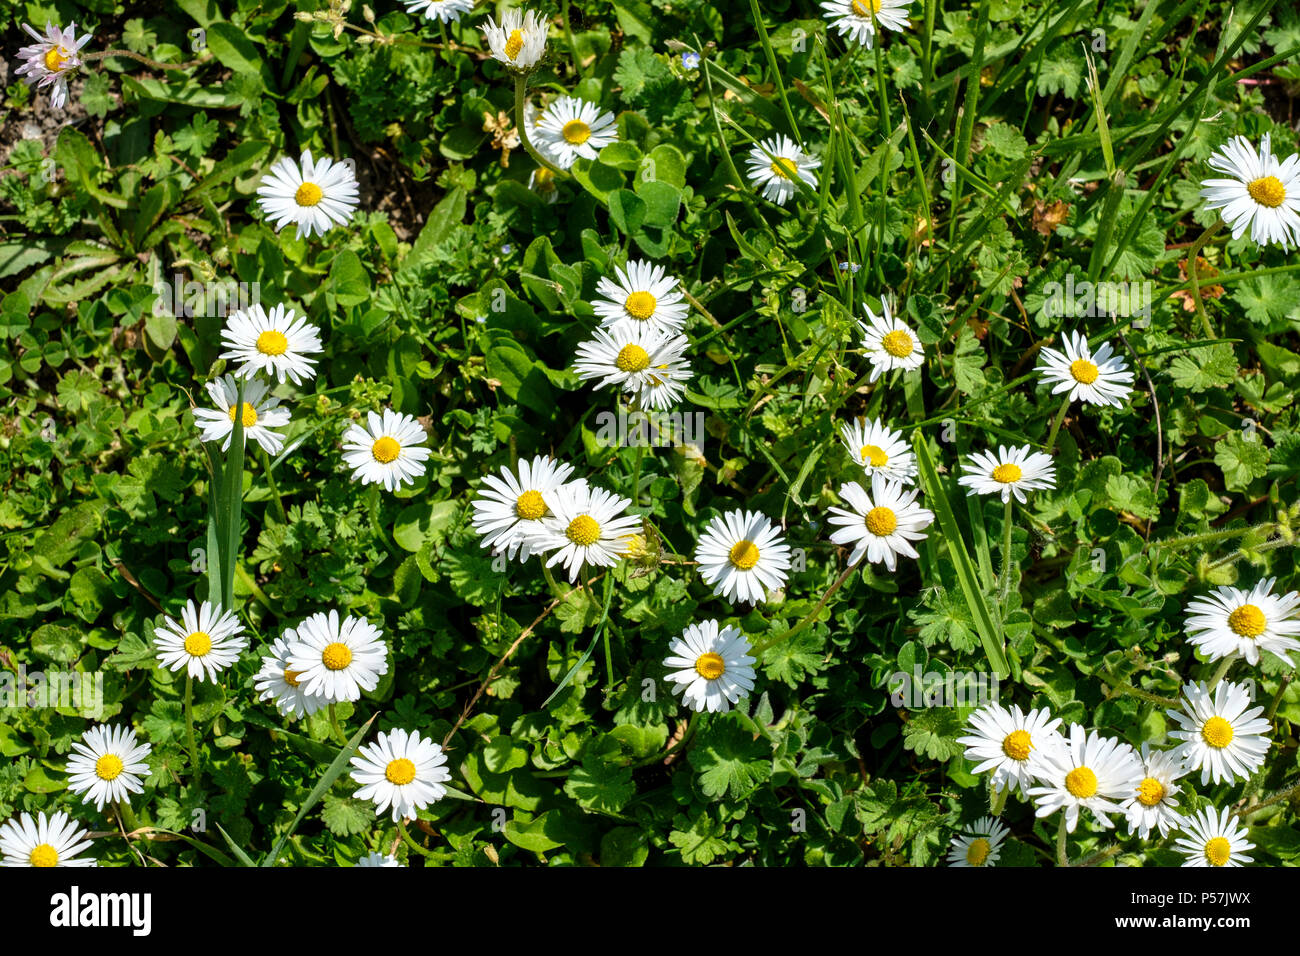 White Daisies Flowers Meadow Alsace France Europe Stock Photo